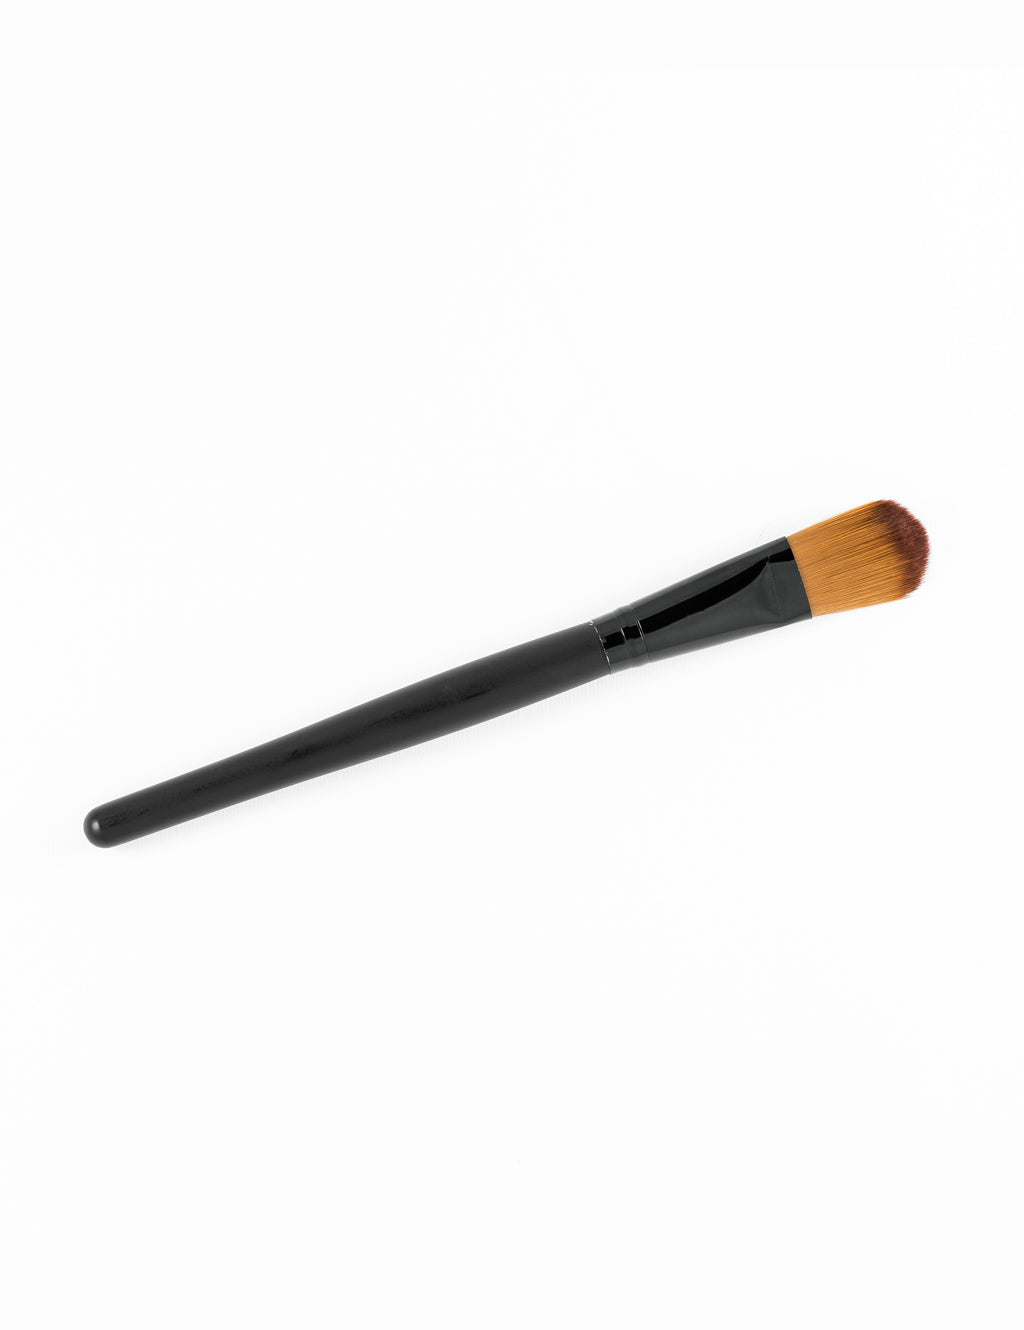 Skin Tool for Face Masks